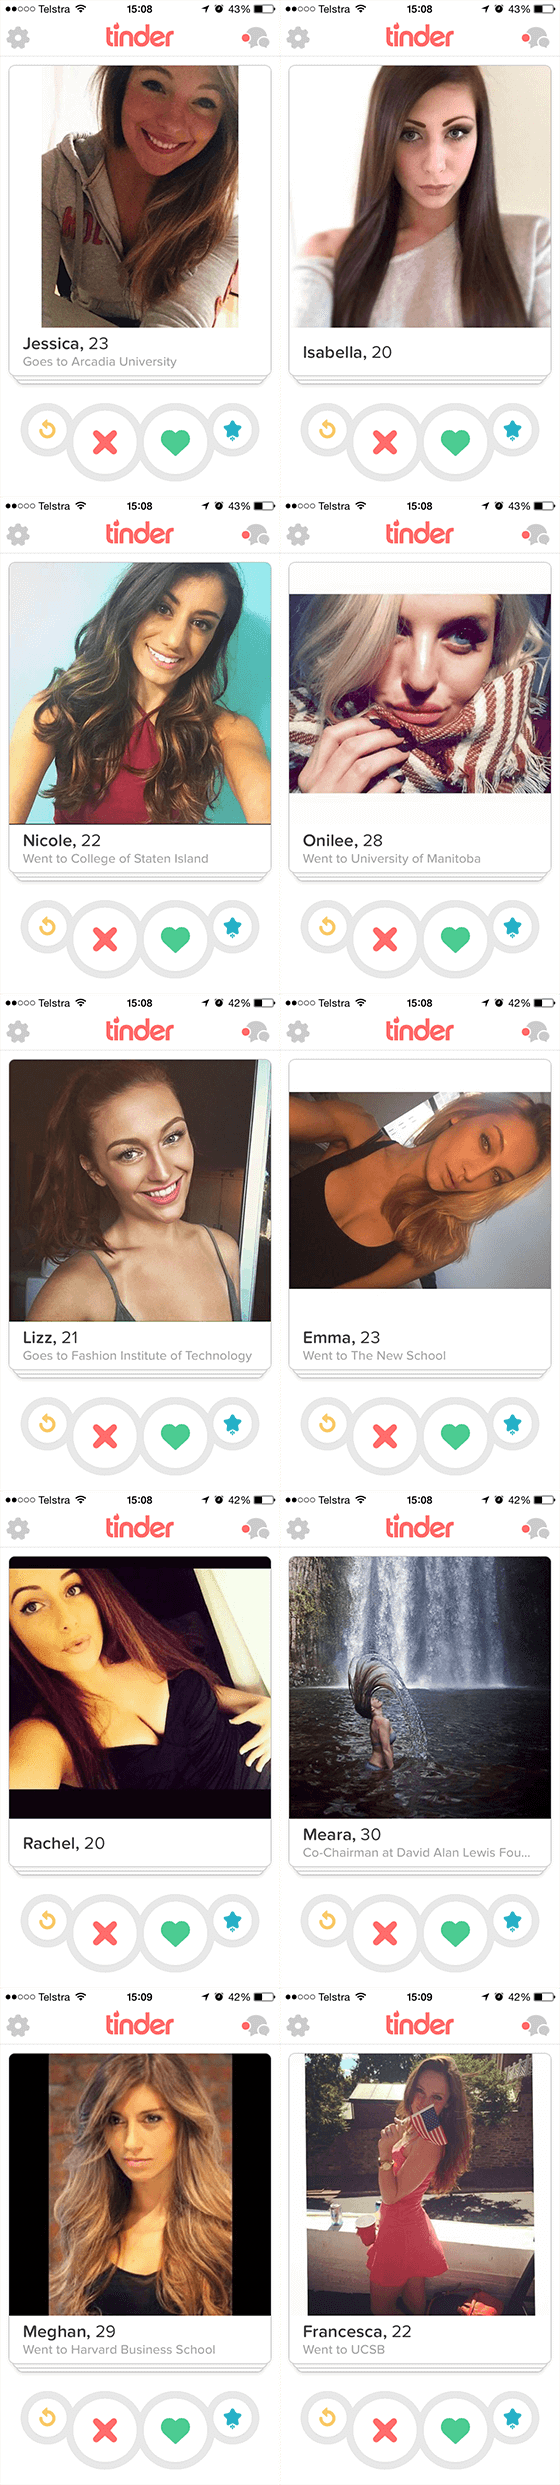 Hottest-Popular-Tinder-women-in-new-york-united-states